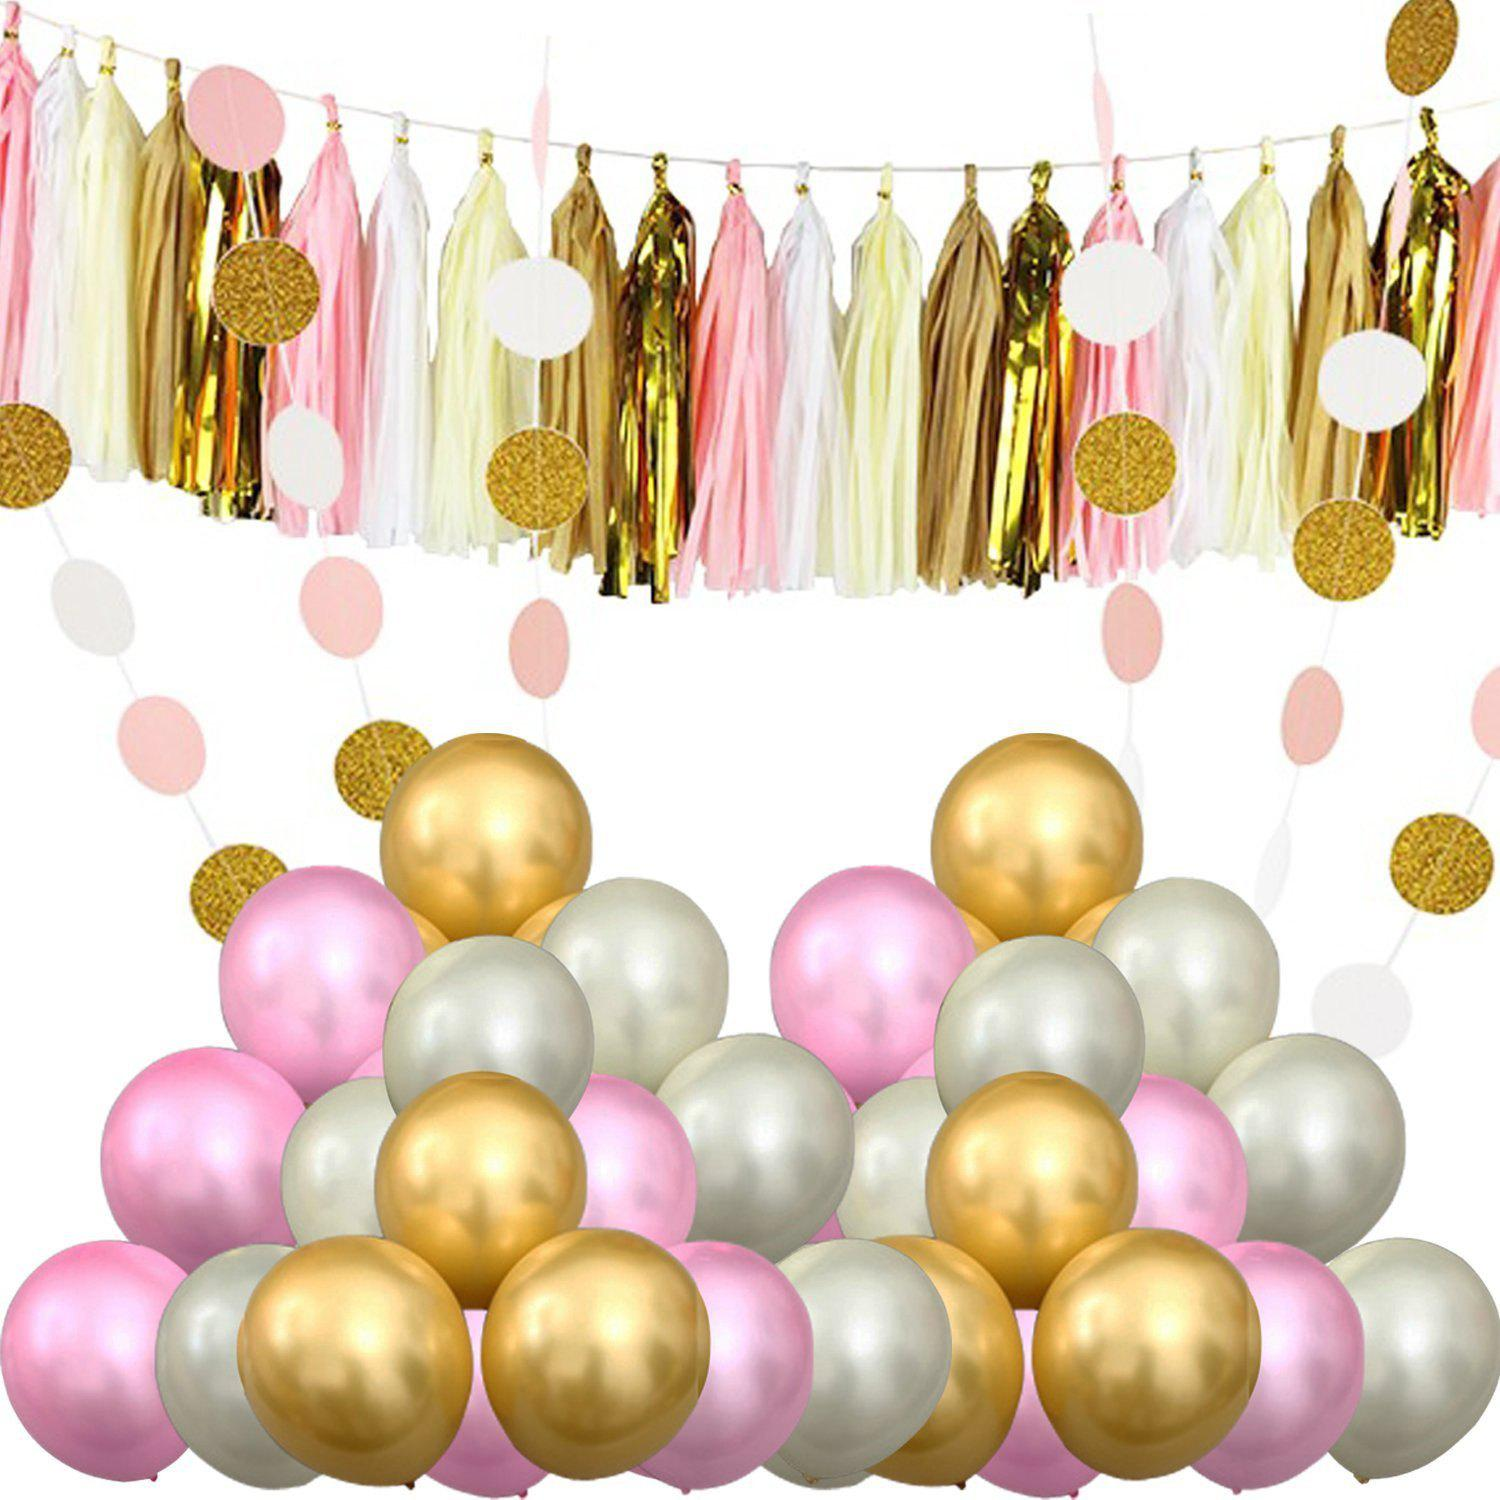 Outfits Party Supplies and Party Decorations 60 Pcs Party Balloons Paper Tassel Polka Dot Paper Perfect for Birthdays Weddings